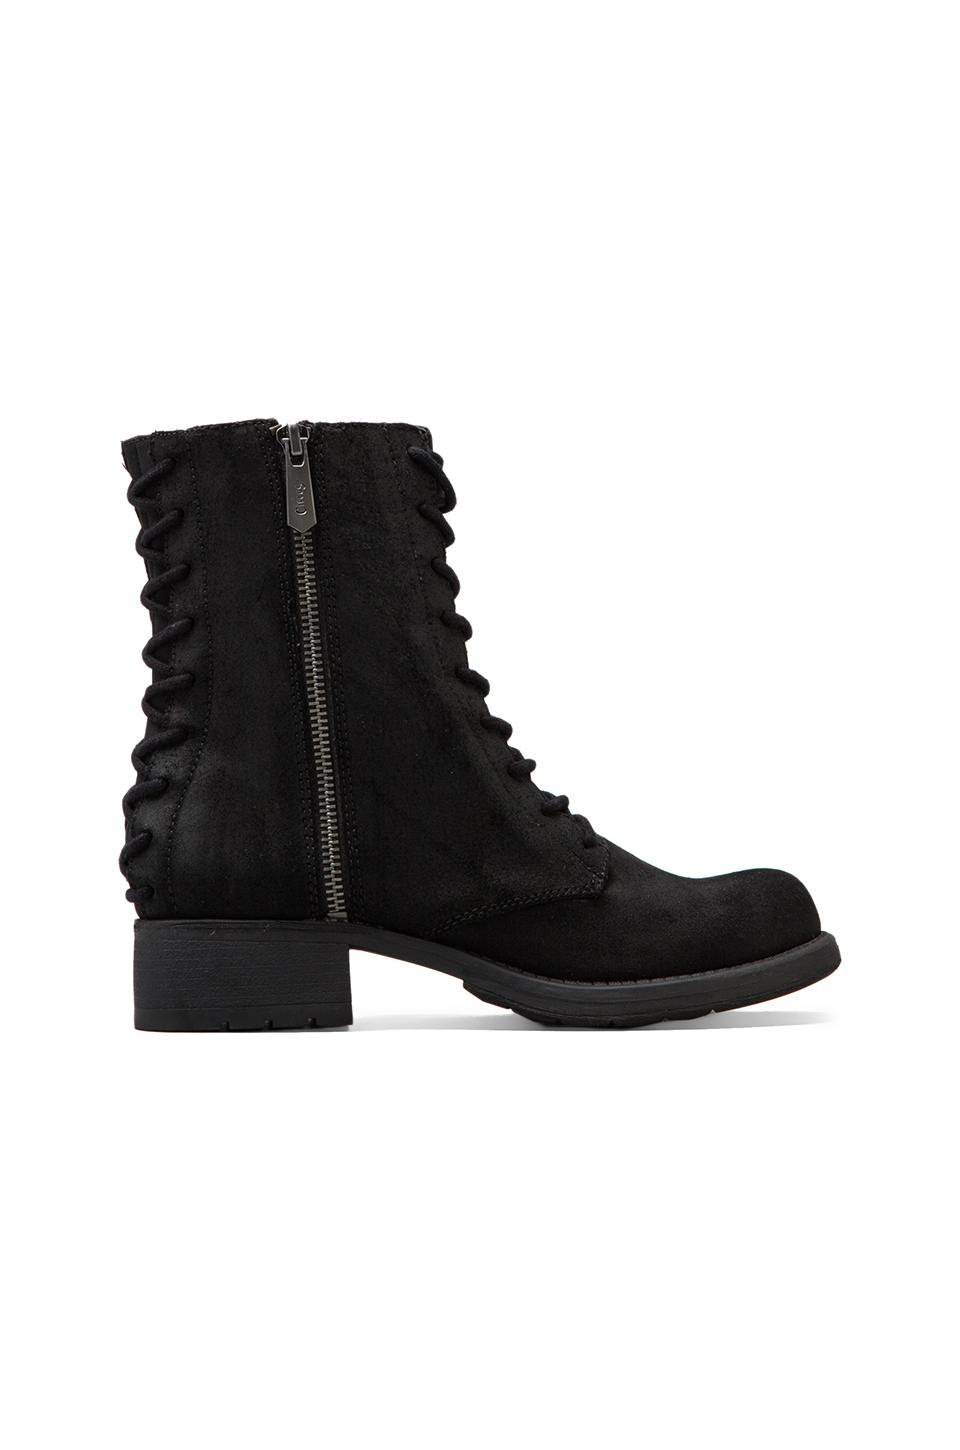 Circus by Sam Edelman Griffin Boot in Black